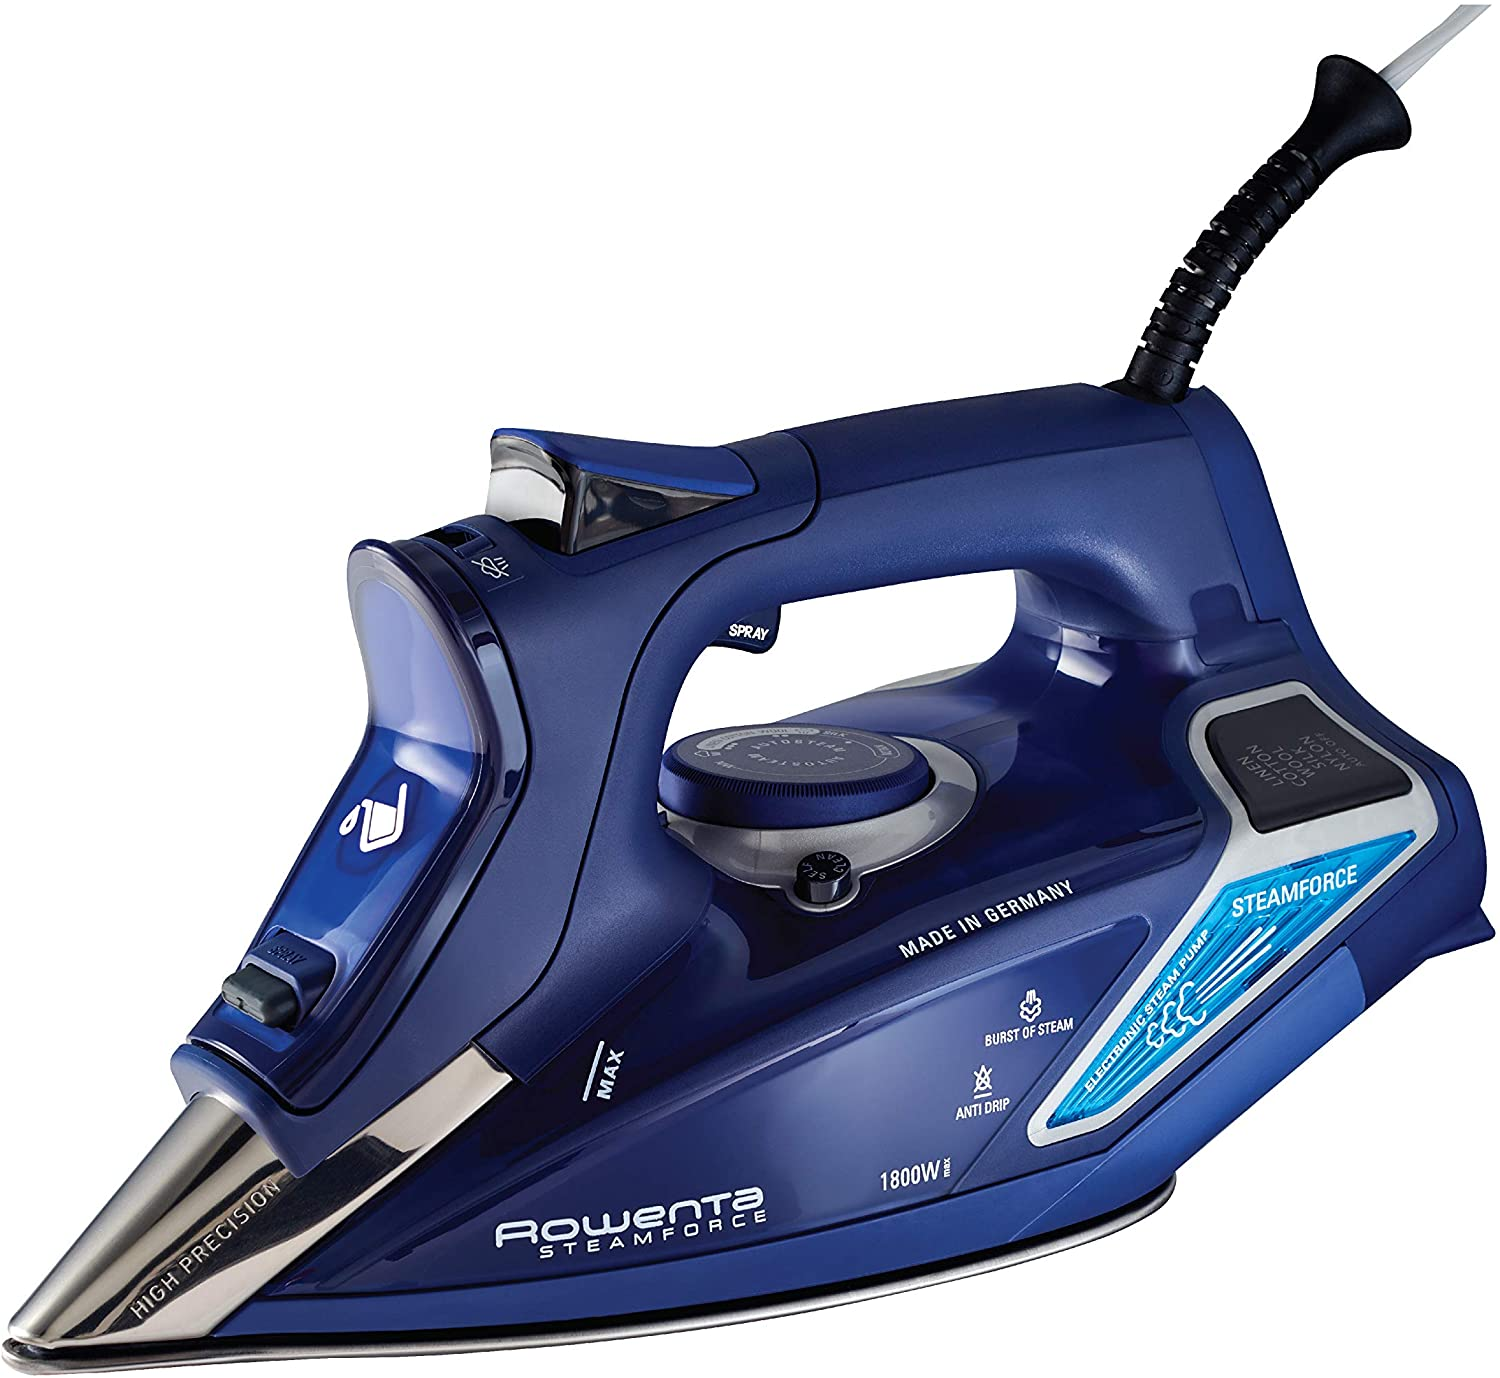 24 Best Iron for Quilting(Including Cloth Stemer and Ironing Board)